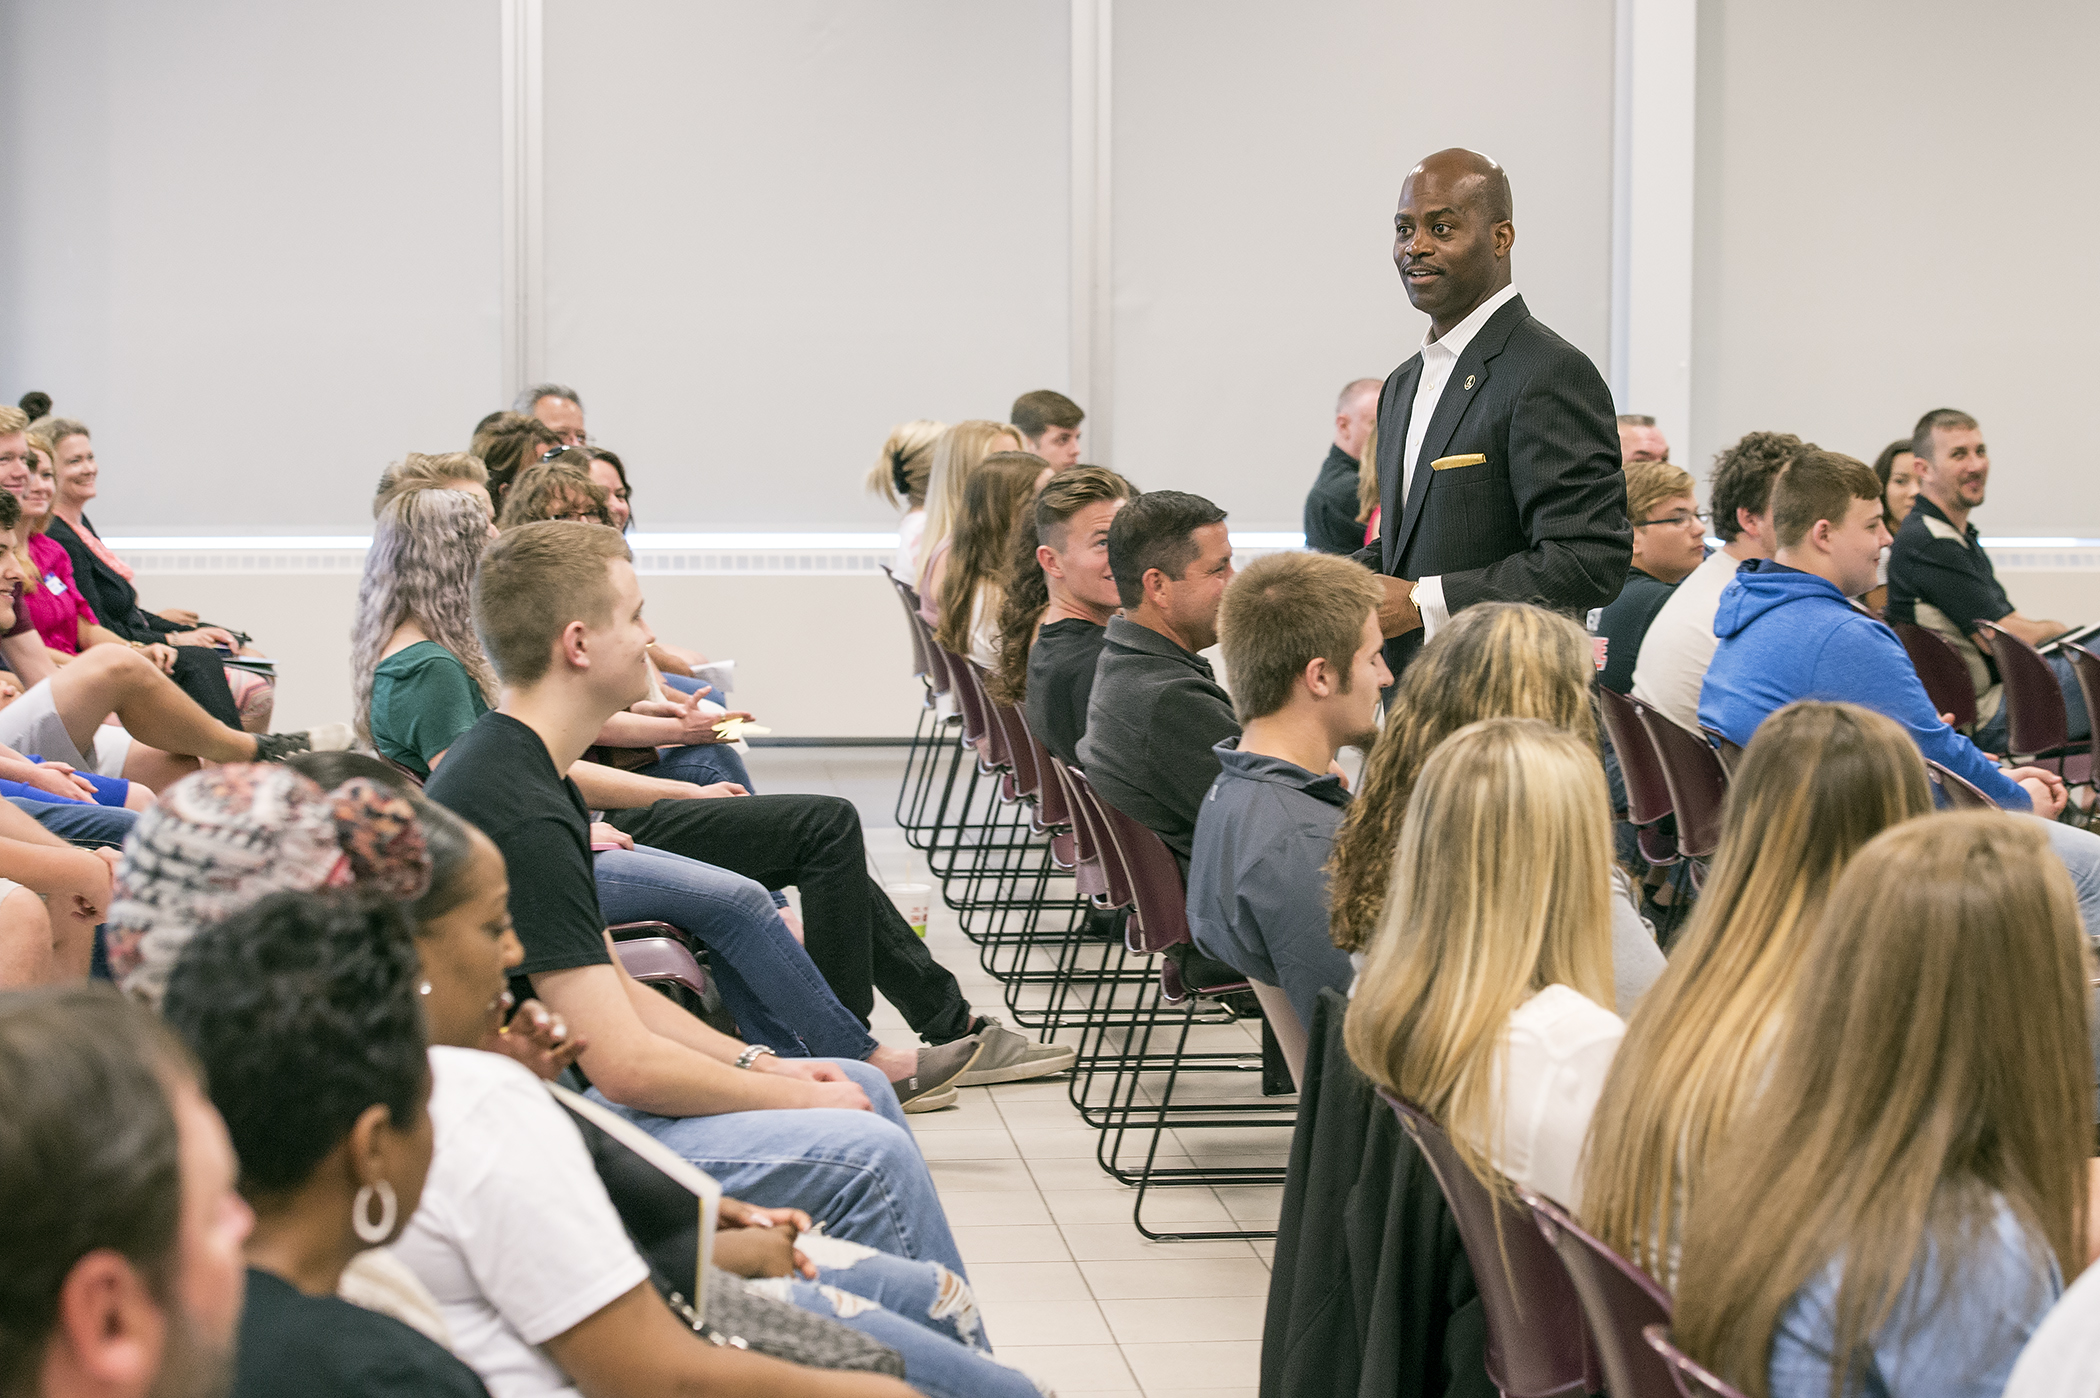 Nearly 100 students attend New Student Orientation